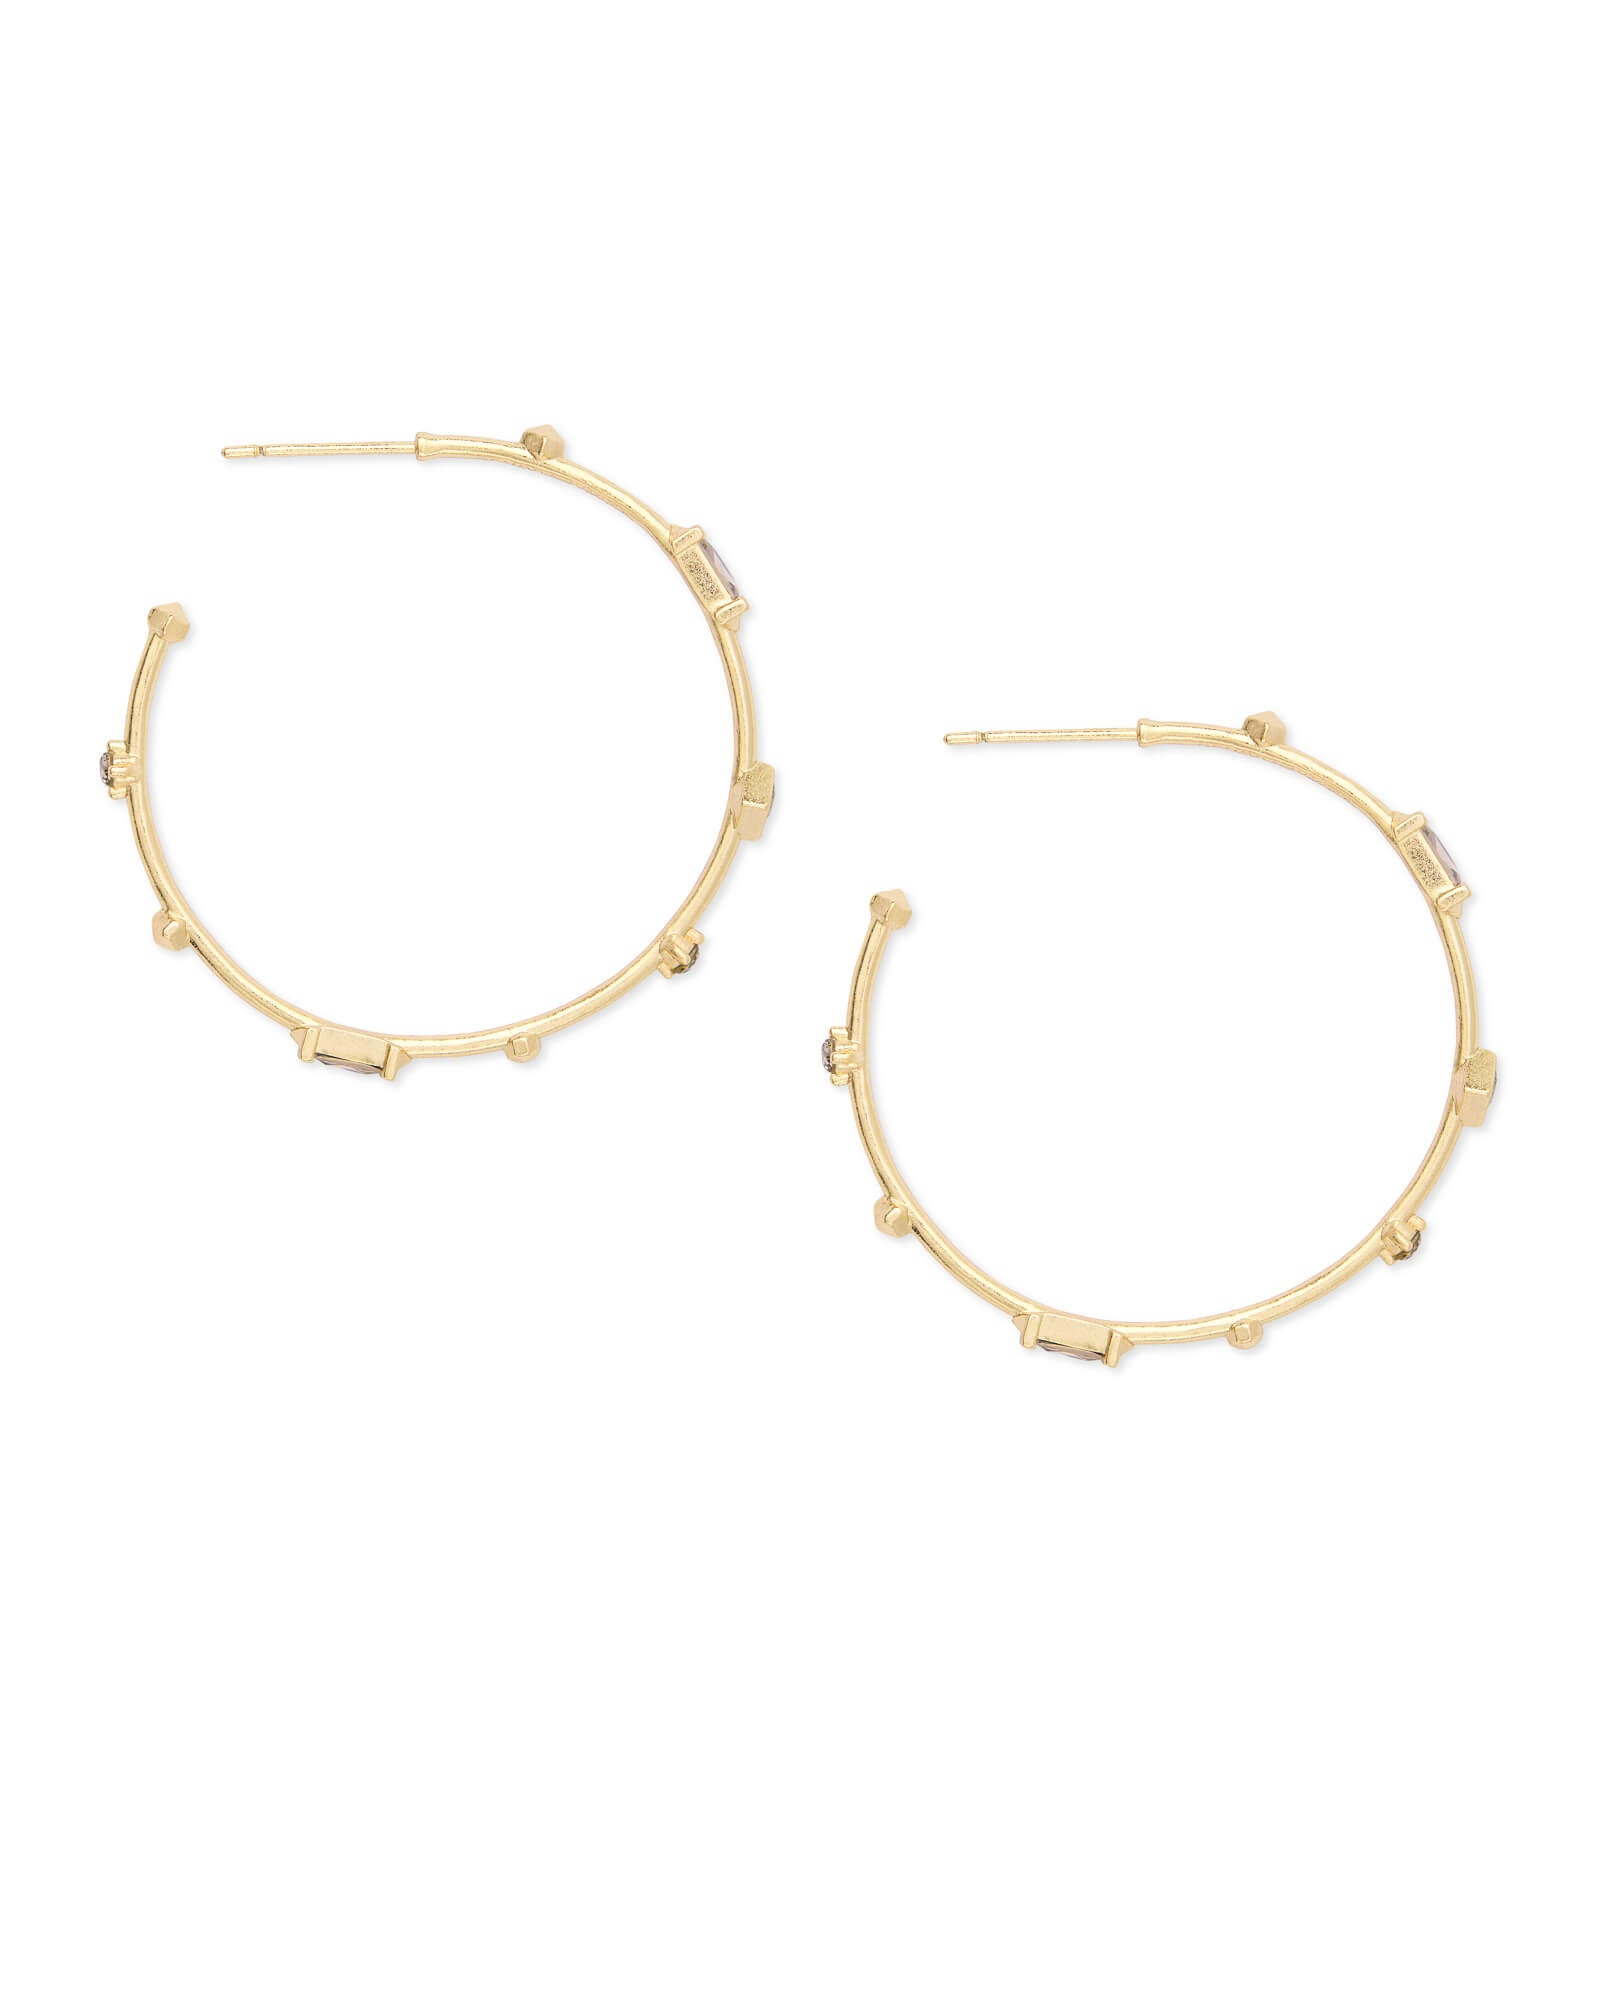 Rhoan Gold Hoop Earrings in Smoky Mix